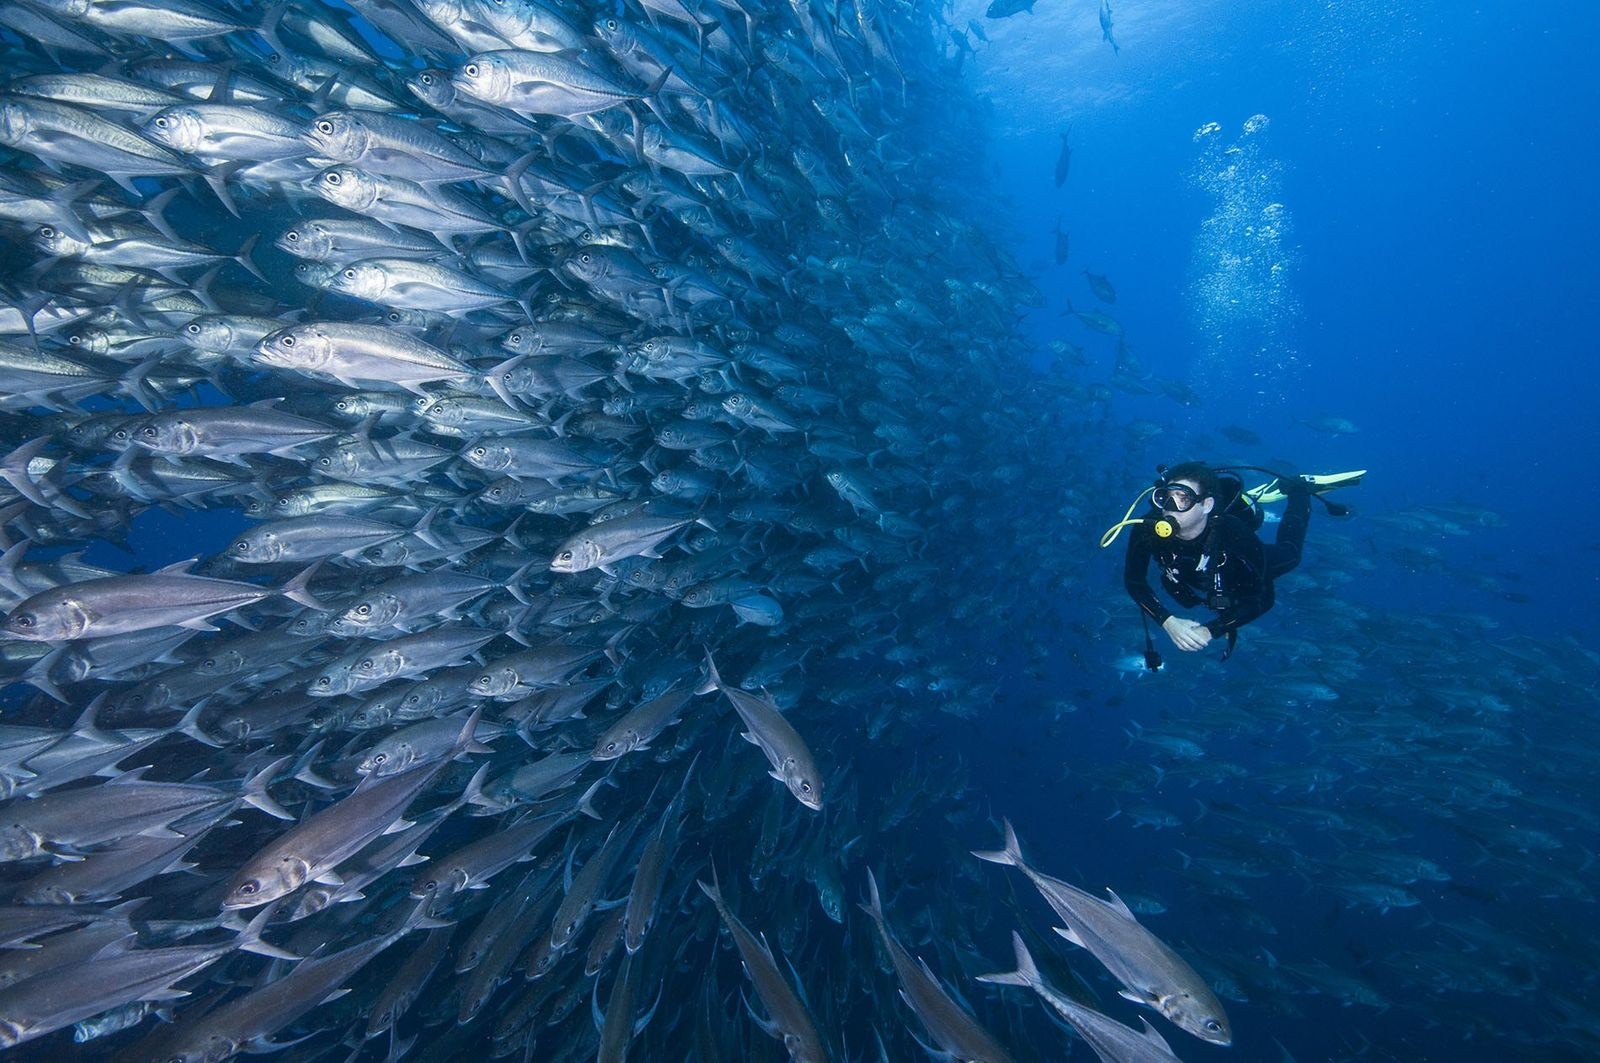 How to get to the world's most remote dive sites